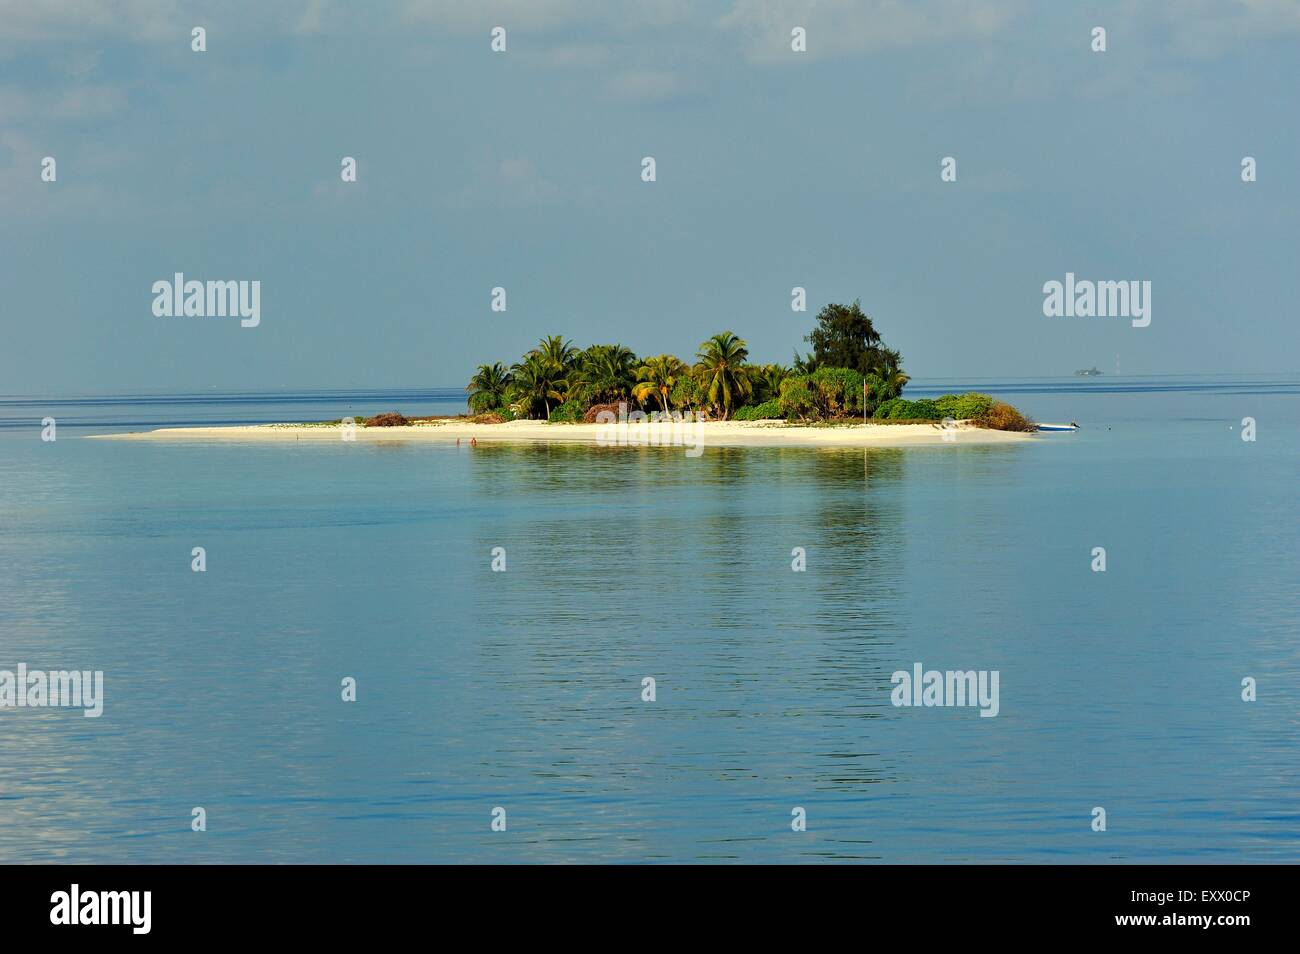 Island in indian ocean, The Maledives - Stock Image